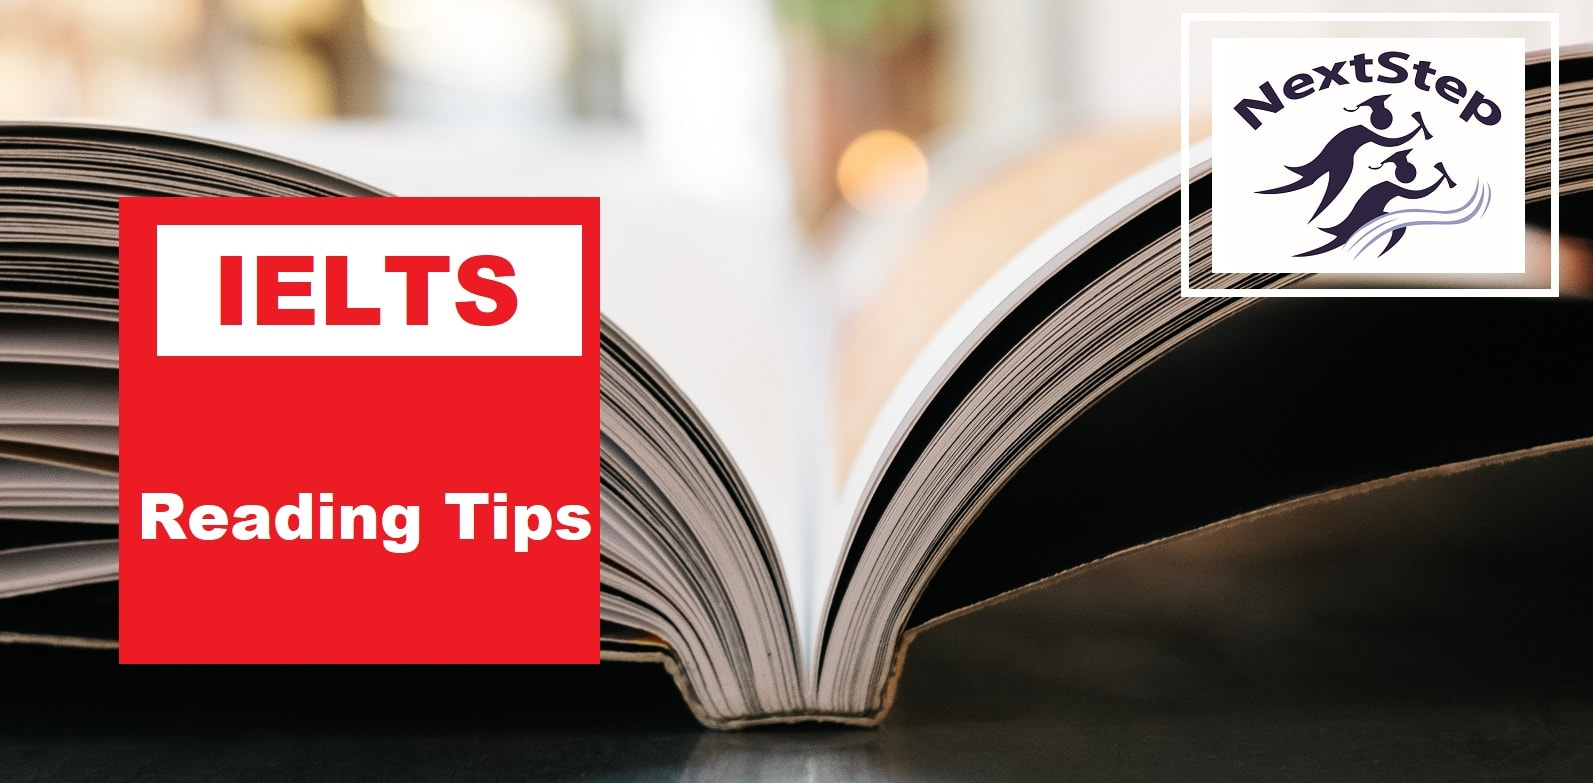 IELTS reading tips to improve the reading speed